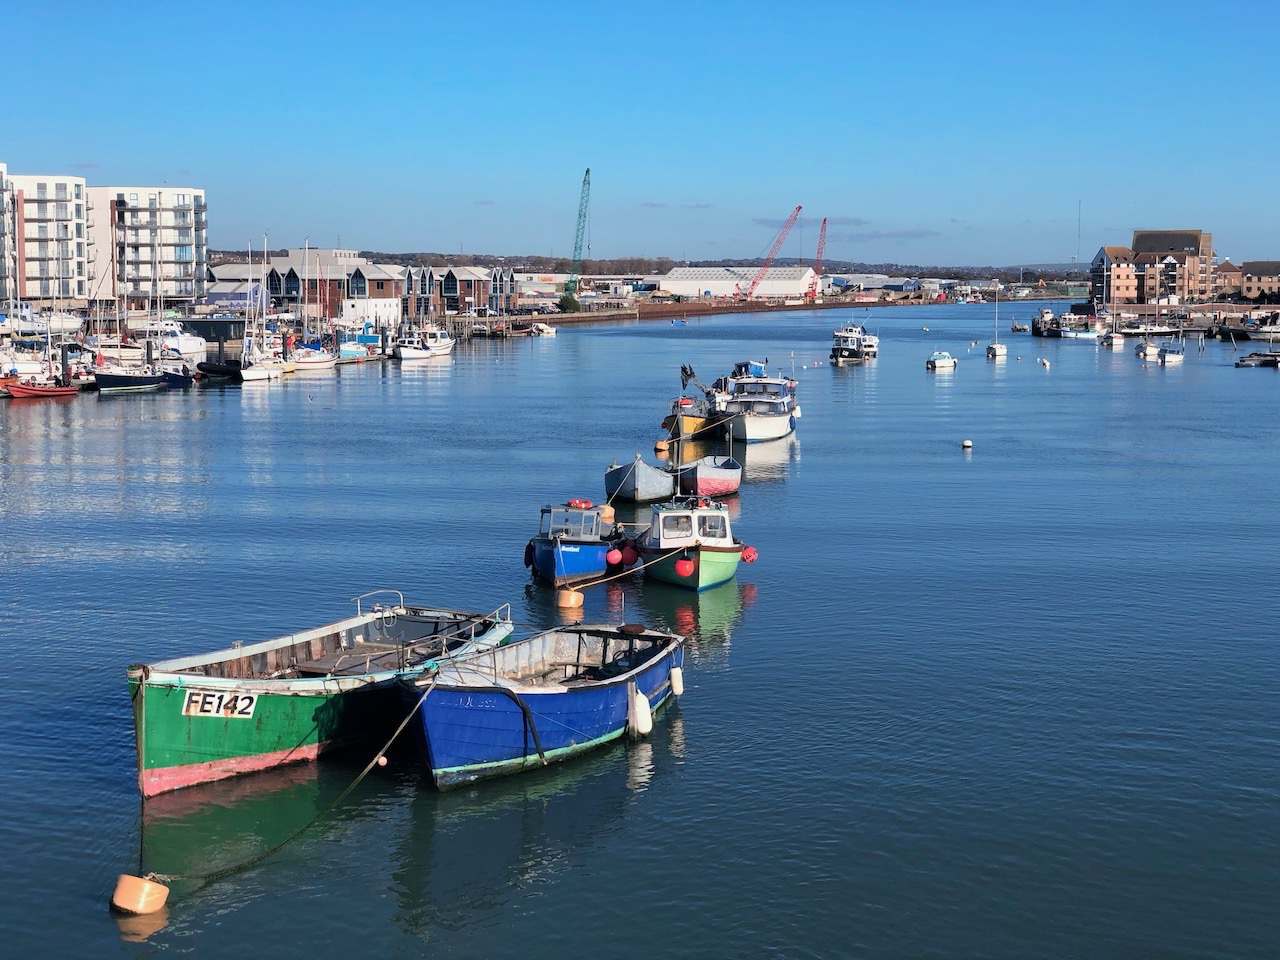 Boats on the river Adur.